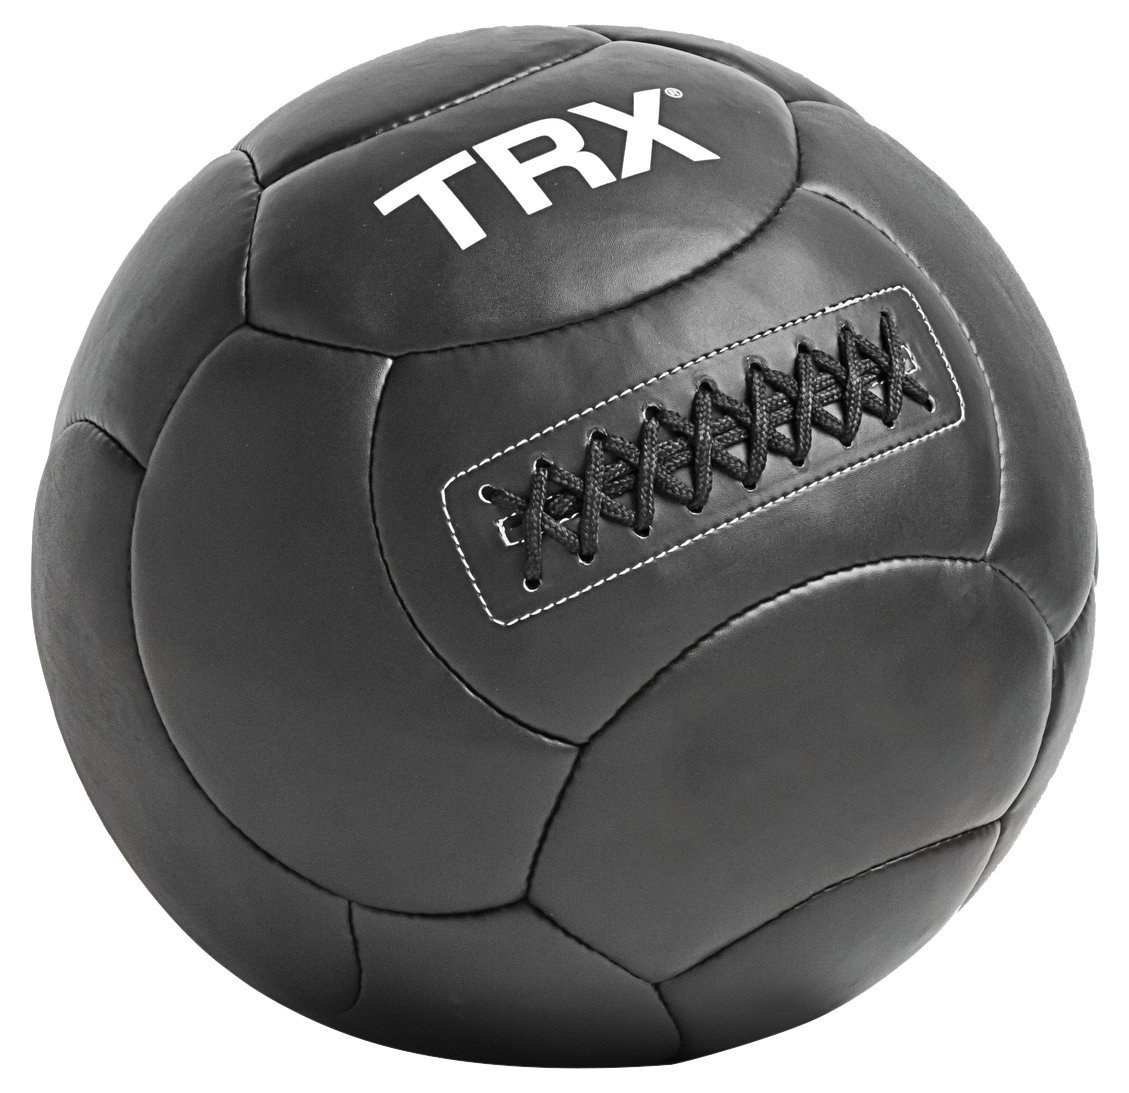 TRX Training Handcrafted Wall Ball with Reinforced